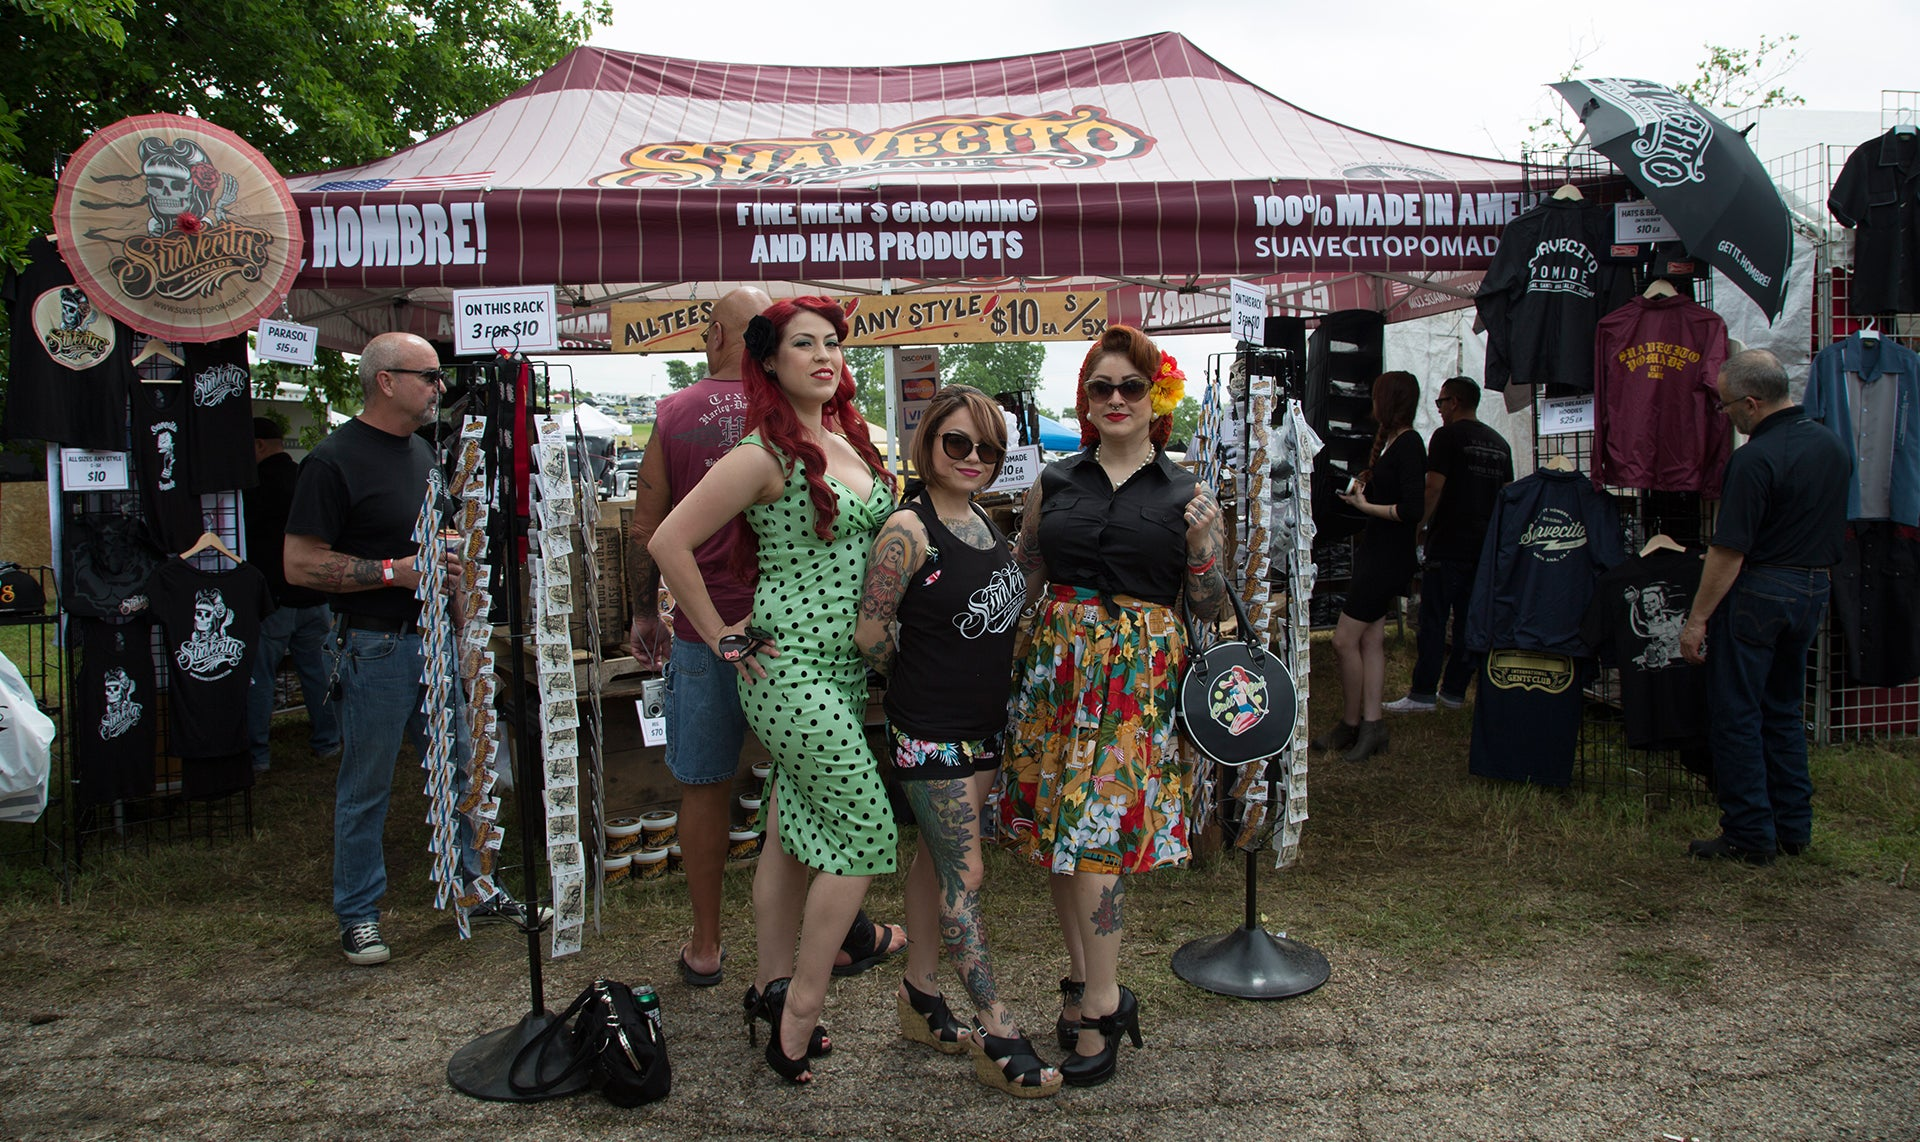 Three great looking girls posing in front of the Suavecito Pomade booth